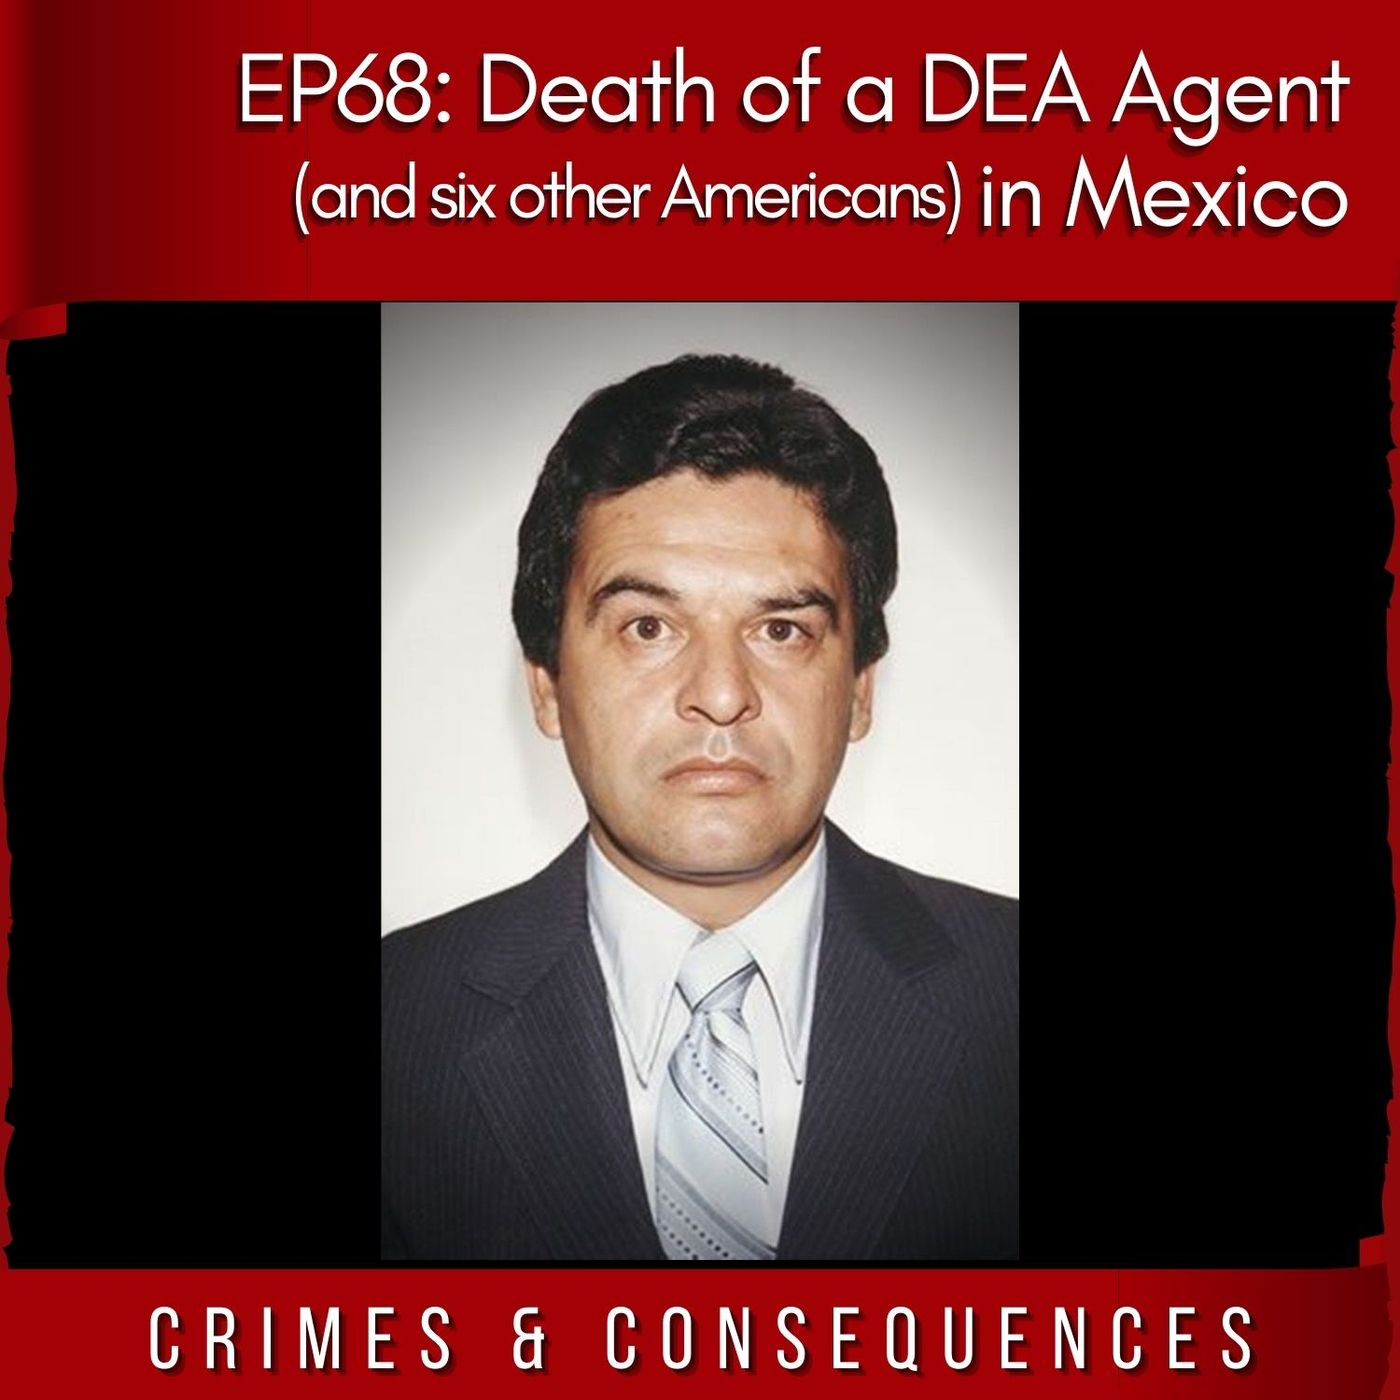 EP68: Death of a DEA Agent in Mexico